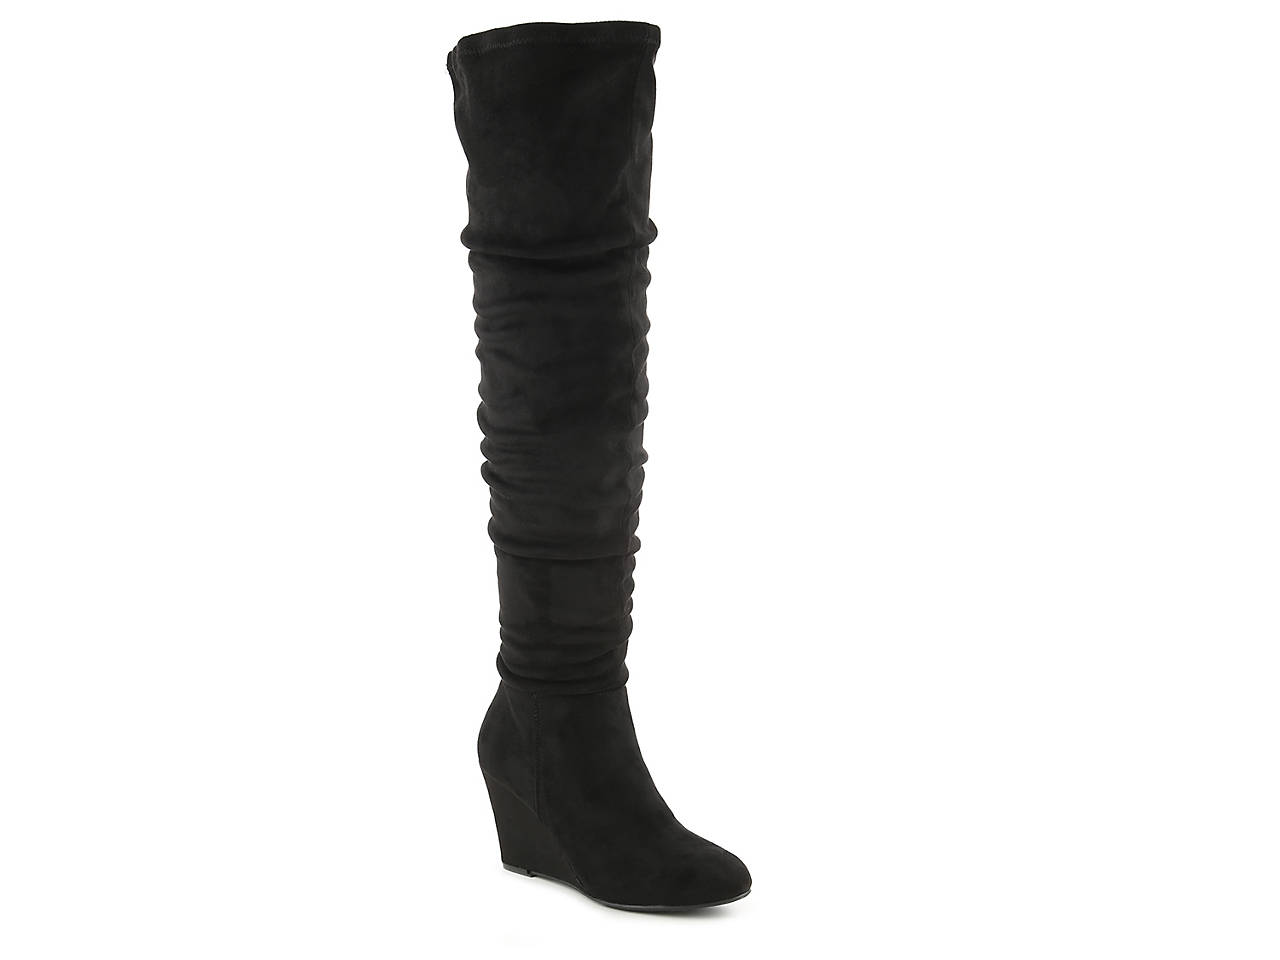 Chinese Laundry Ultra Over the Knee Wedge Boot (Women's) 0dUE0XeS